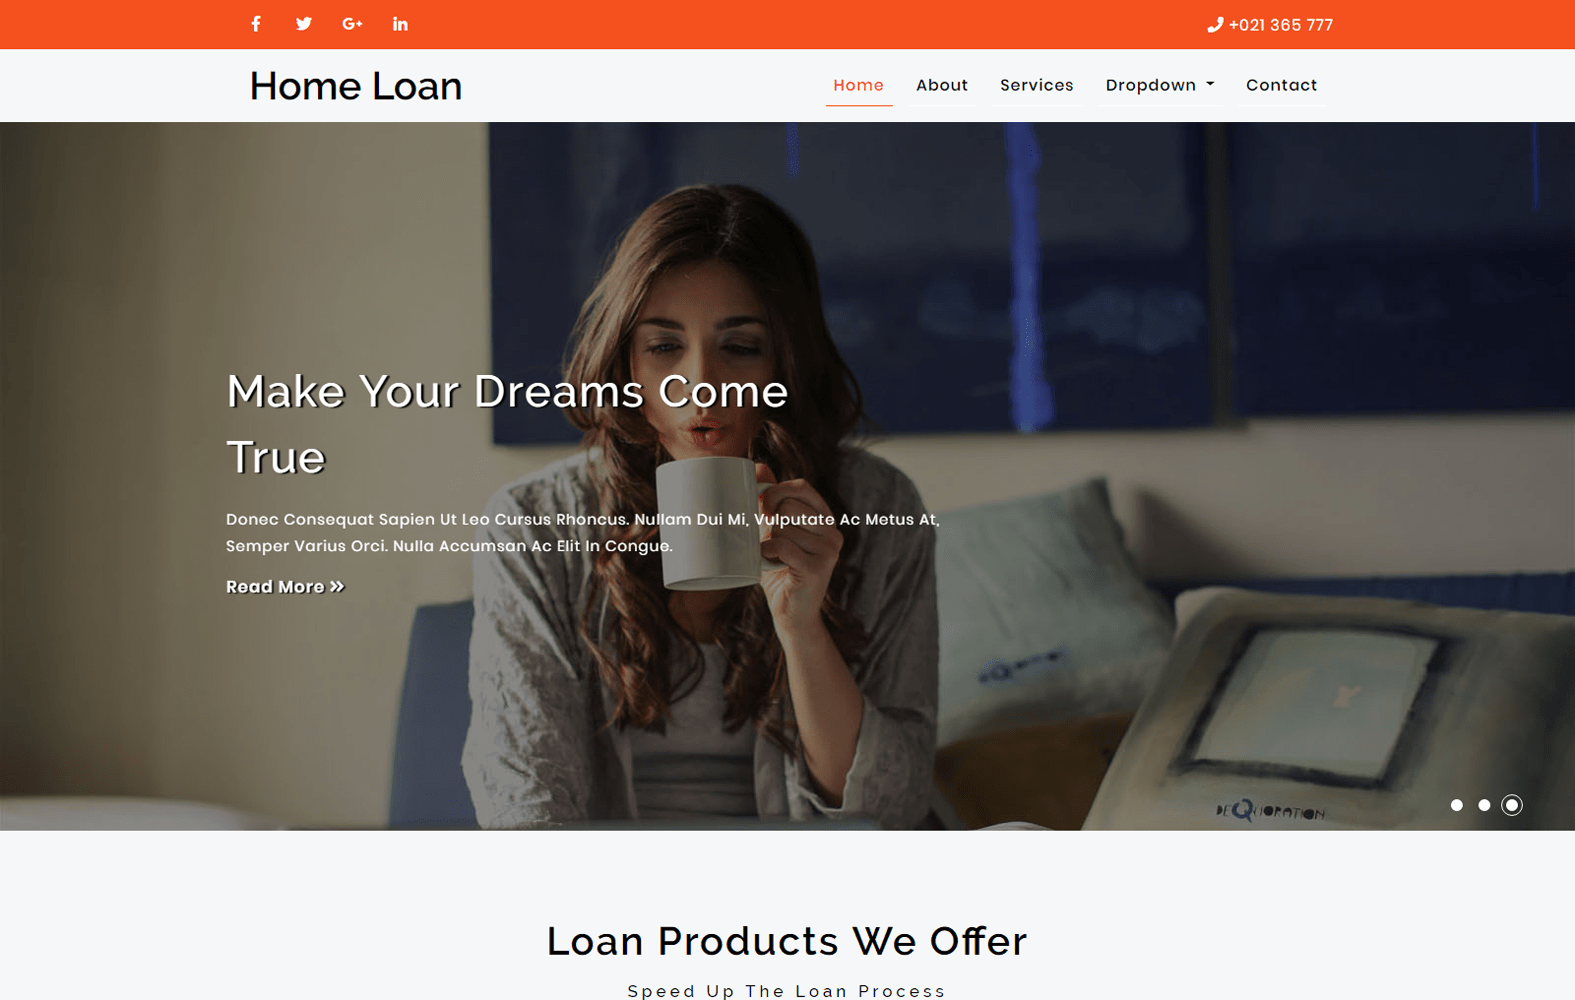 Home loan – Banking Category Bootstrap Responsive Web Template.